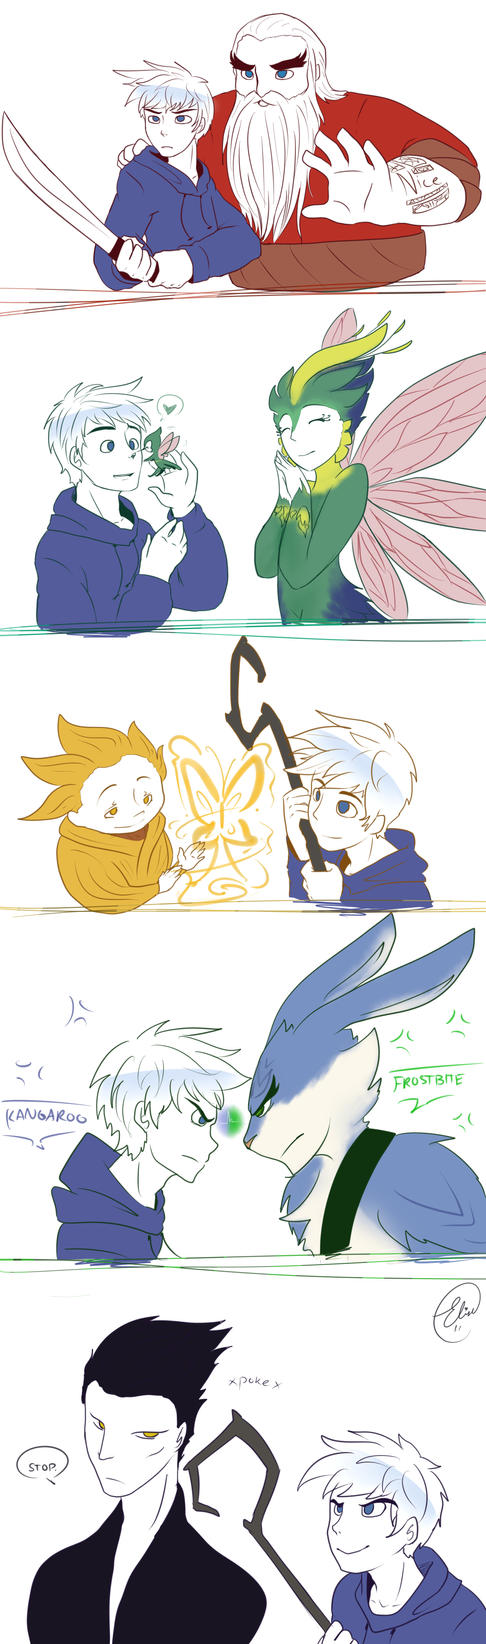 Rotg - Jack's free time by ChibiGuardianAngel